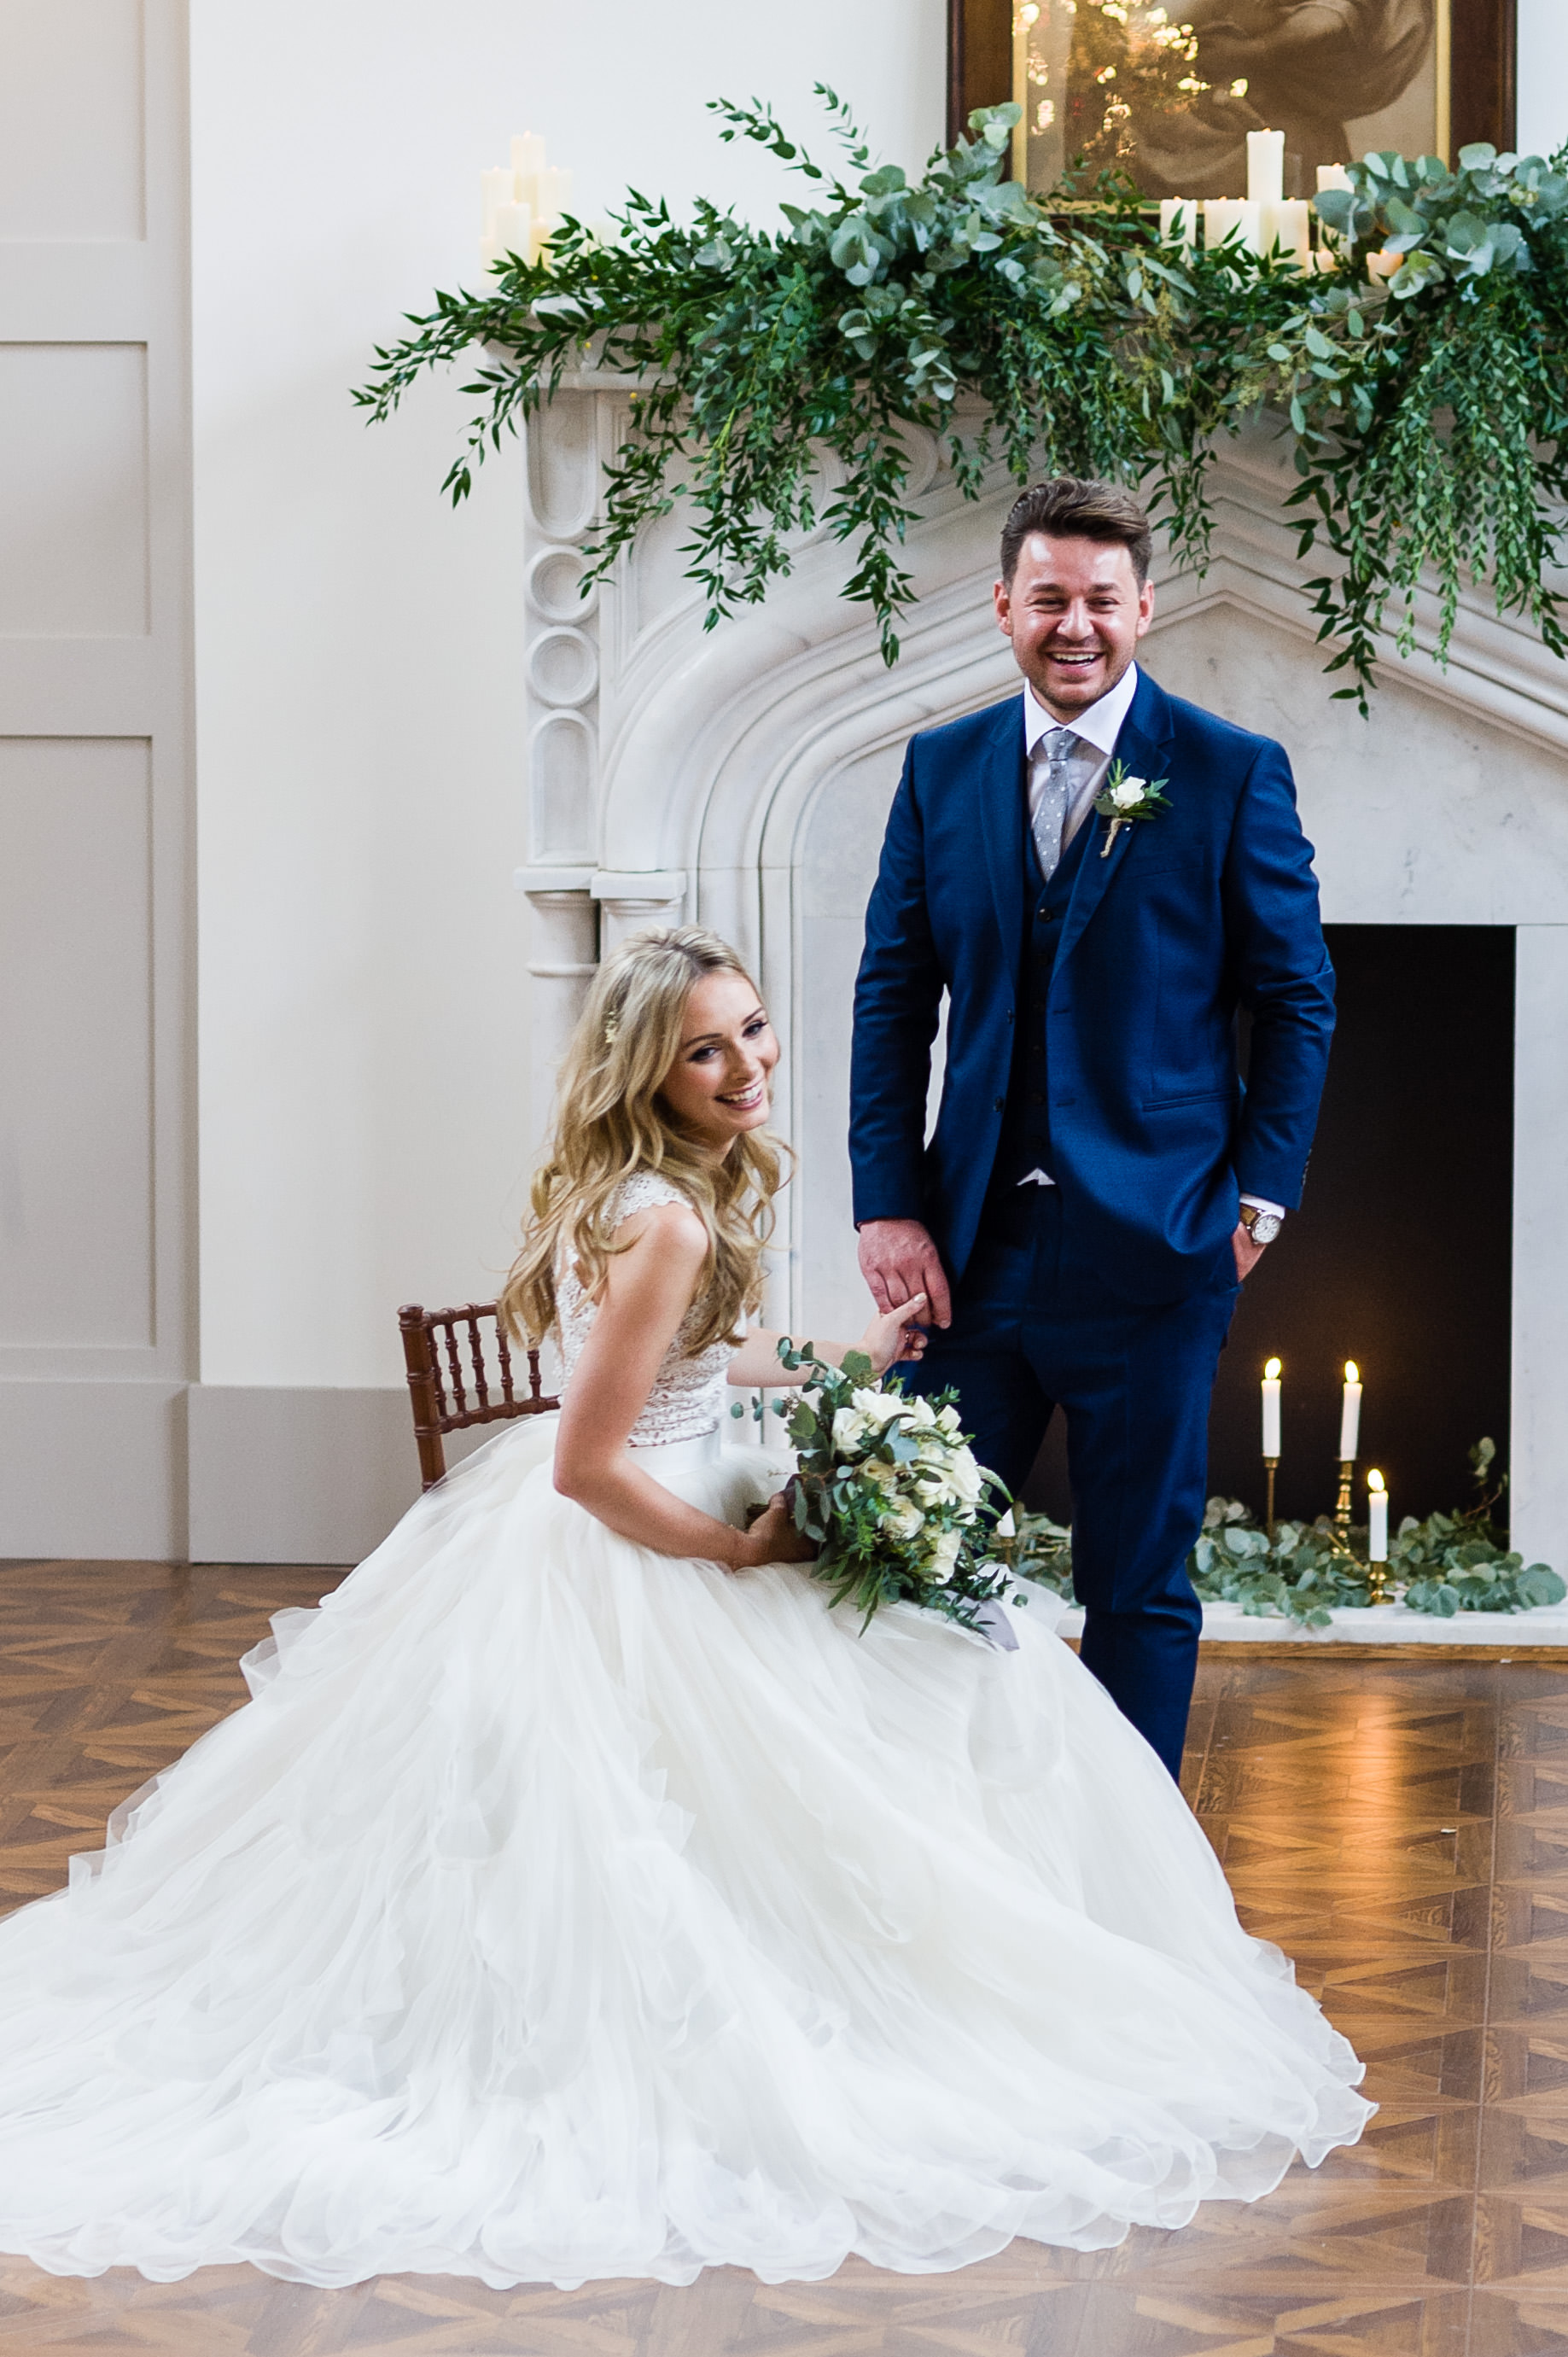 Wedding venue floral styling at Thicket Priory, Yorkshire